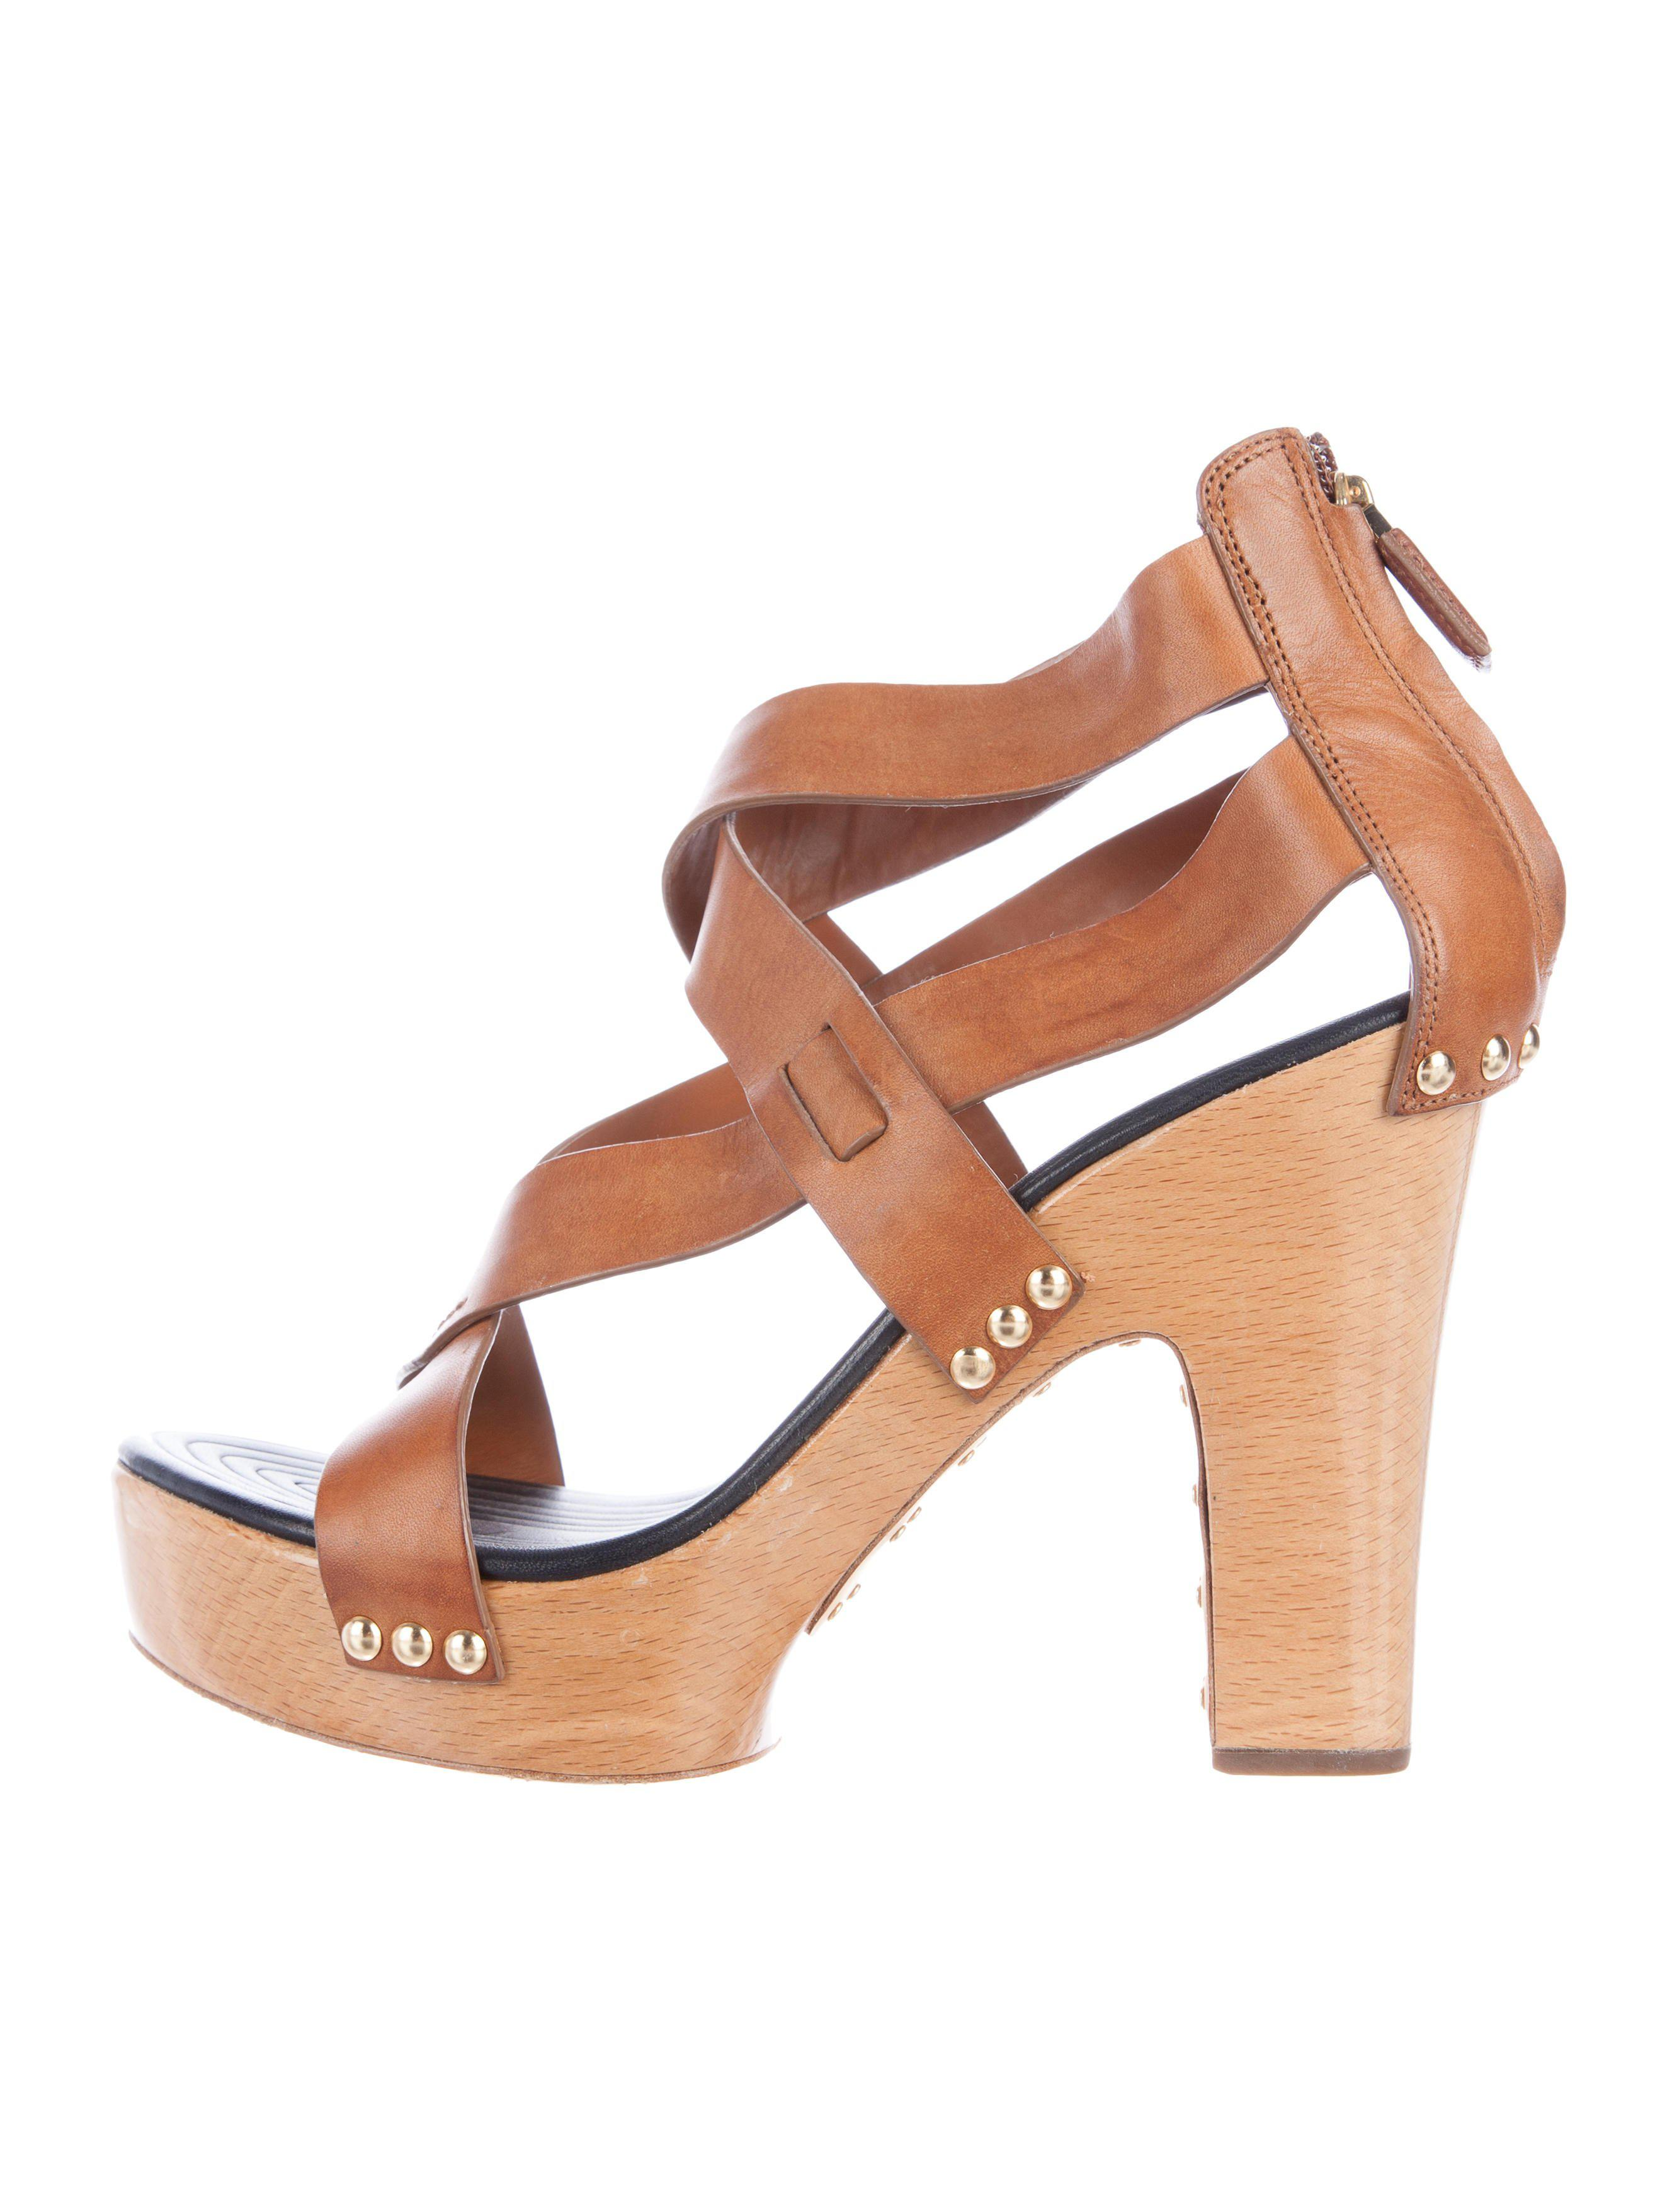 Givenchy Crossover Platform Sandals buy cheap wide range of GD7c2O9CPC